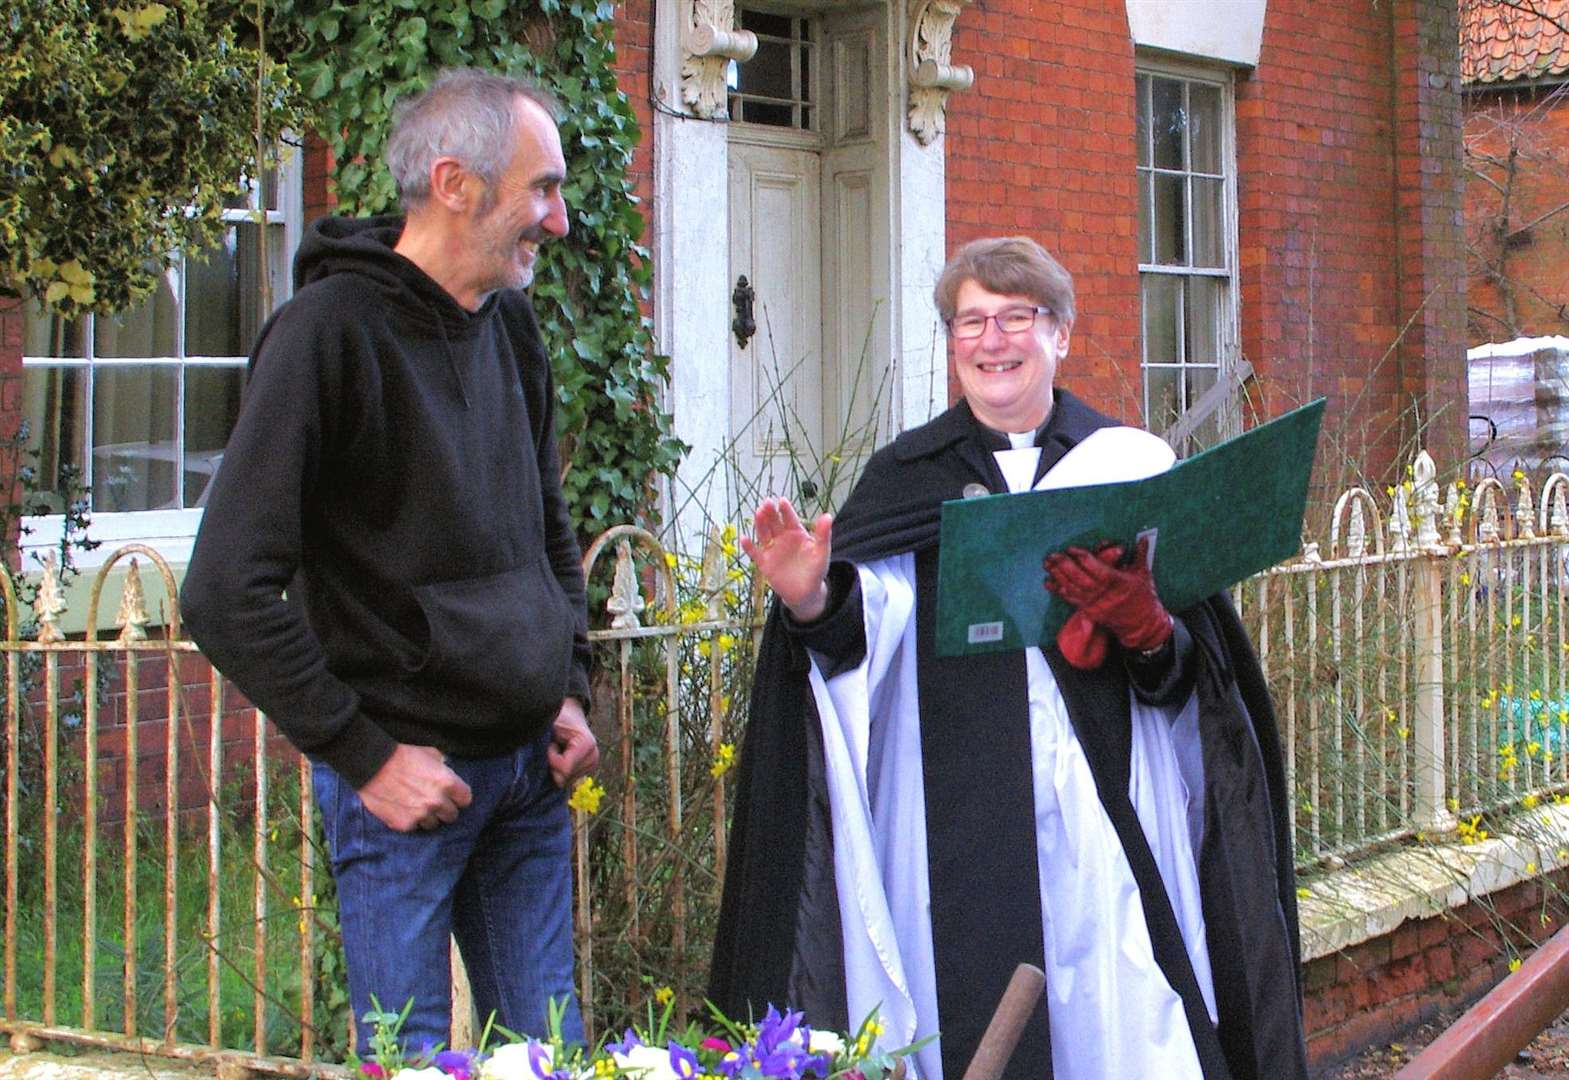 Resident organises church service to bless plough